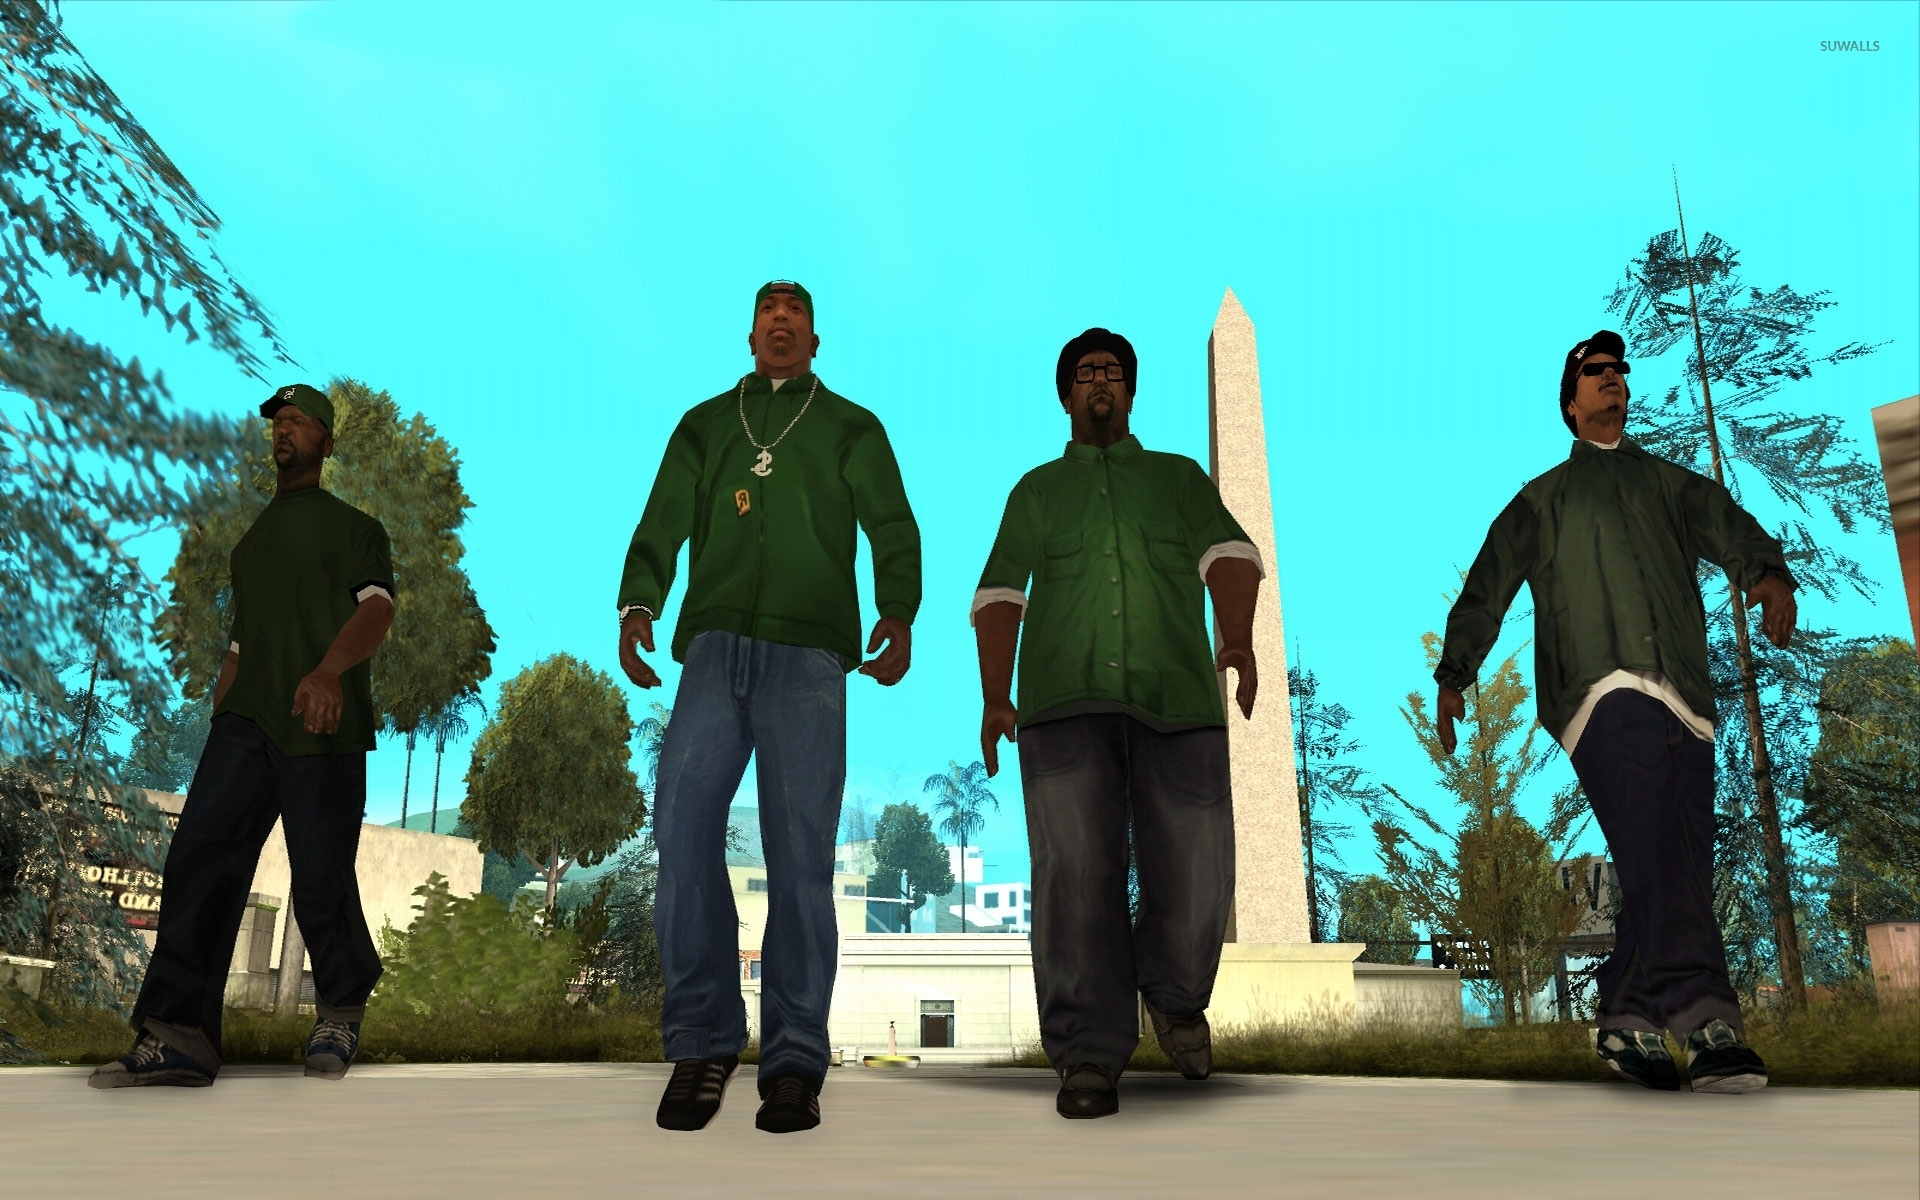 Grand Theft Auto San Andreas 2 Wallpaper Game Wallpapers 45647